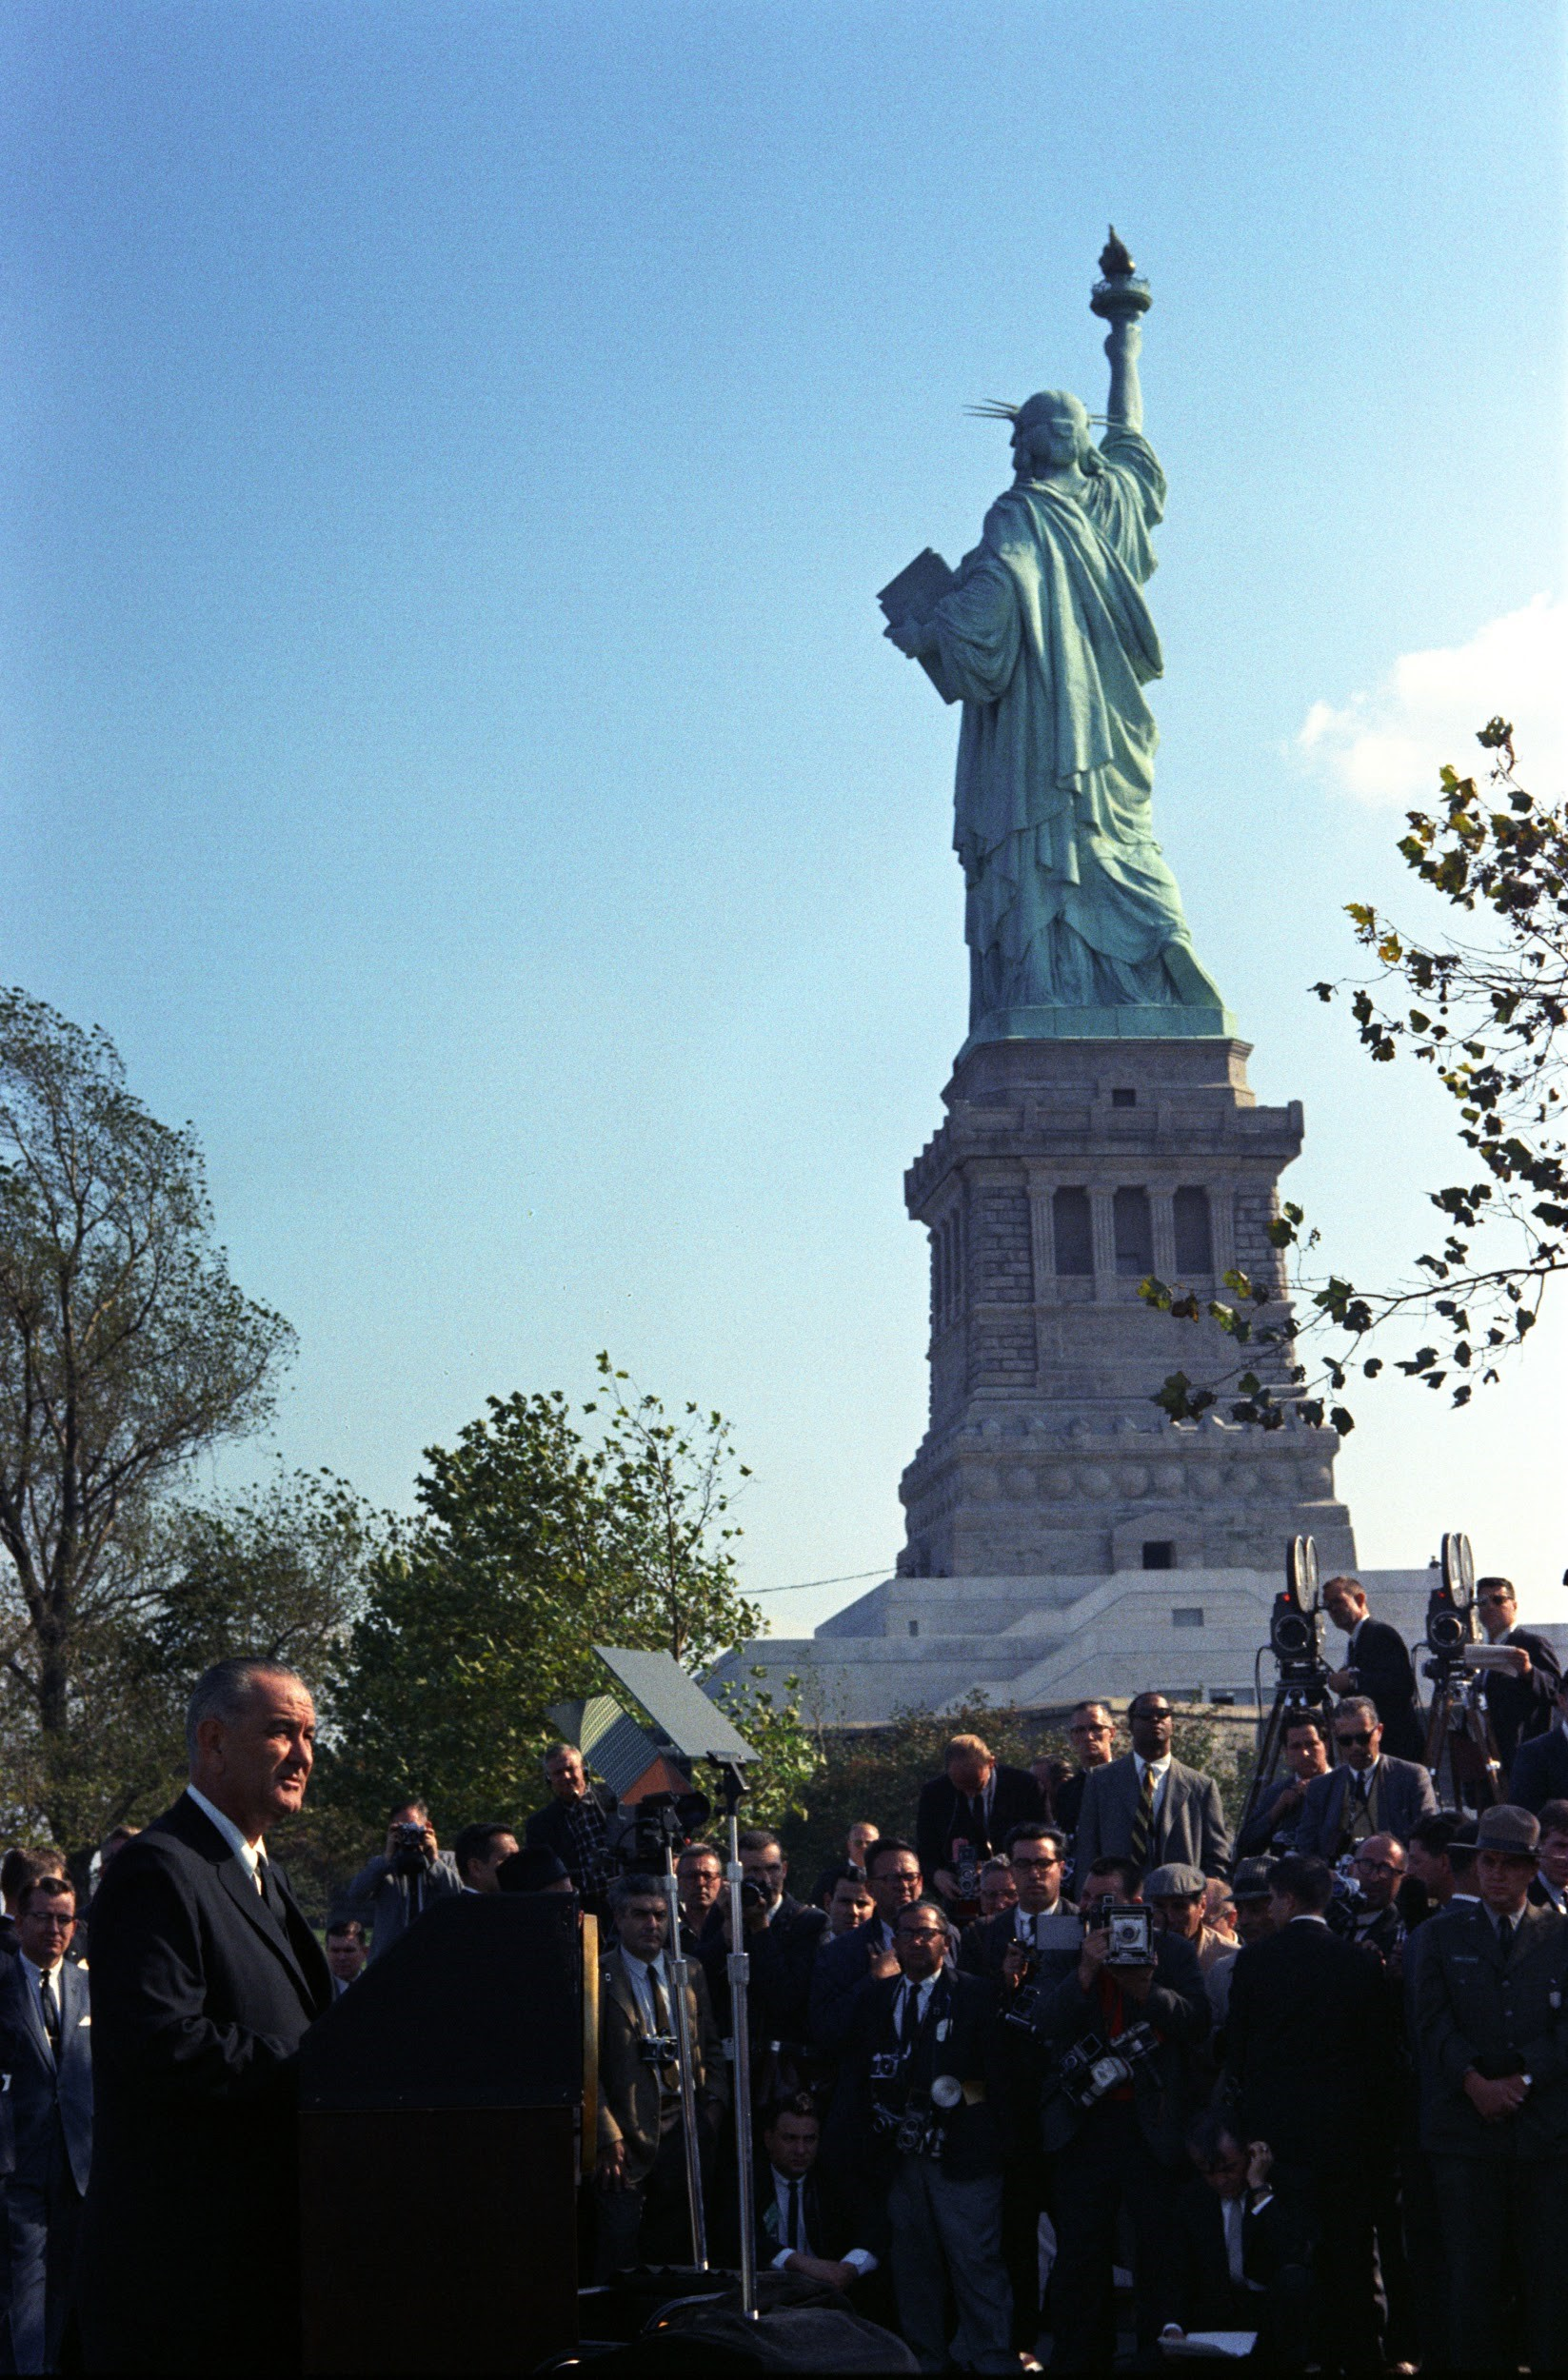 President Lyndon B. Johnson visits the Statue of Liberty to sign the Immigration and Nationality Act of 1965.